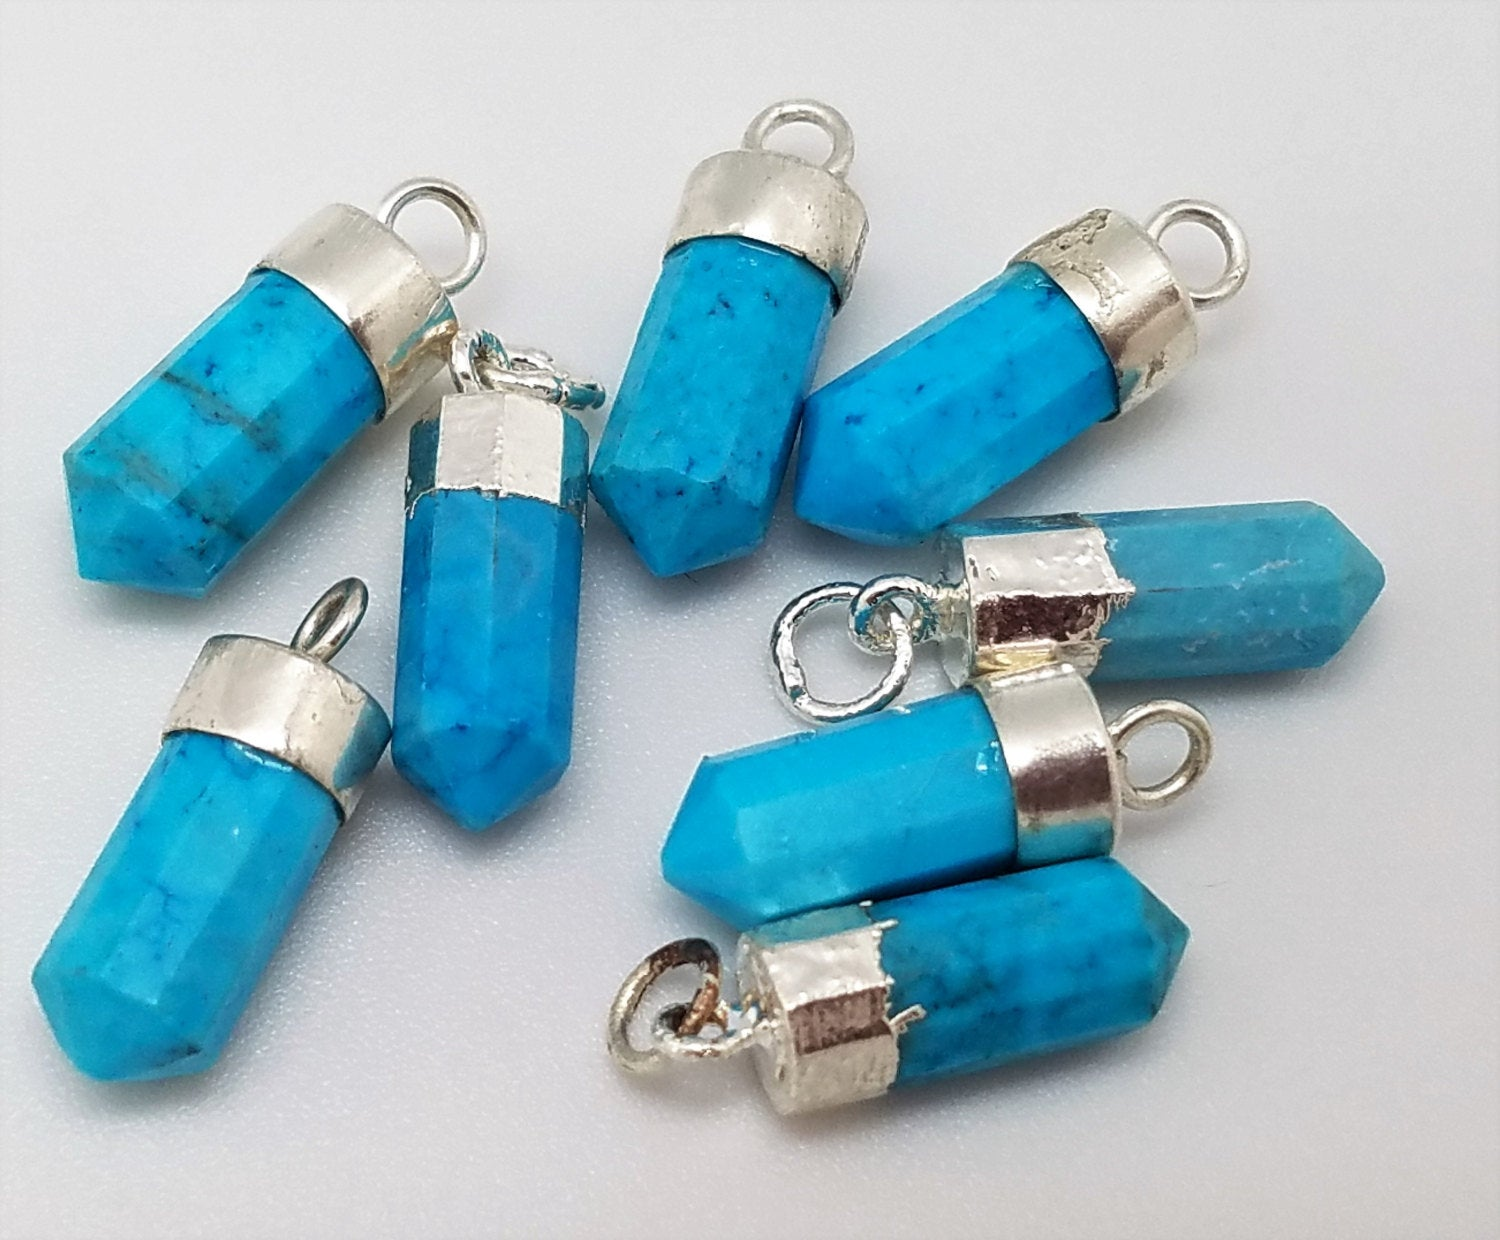 Turquoise Howlite Point Charm Pendants w/Silver Plating, 15mm